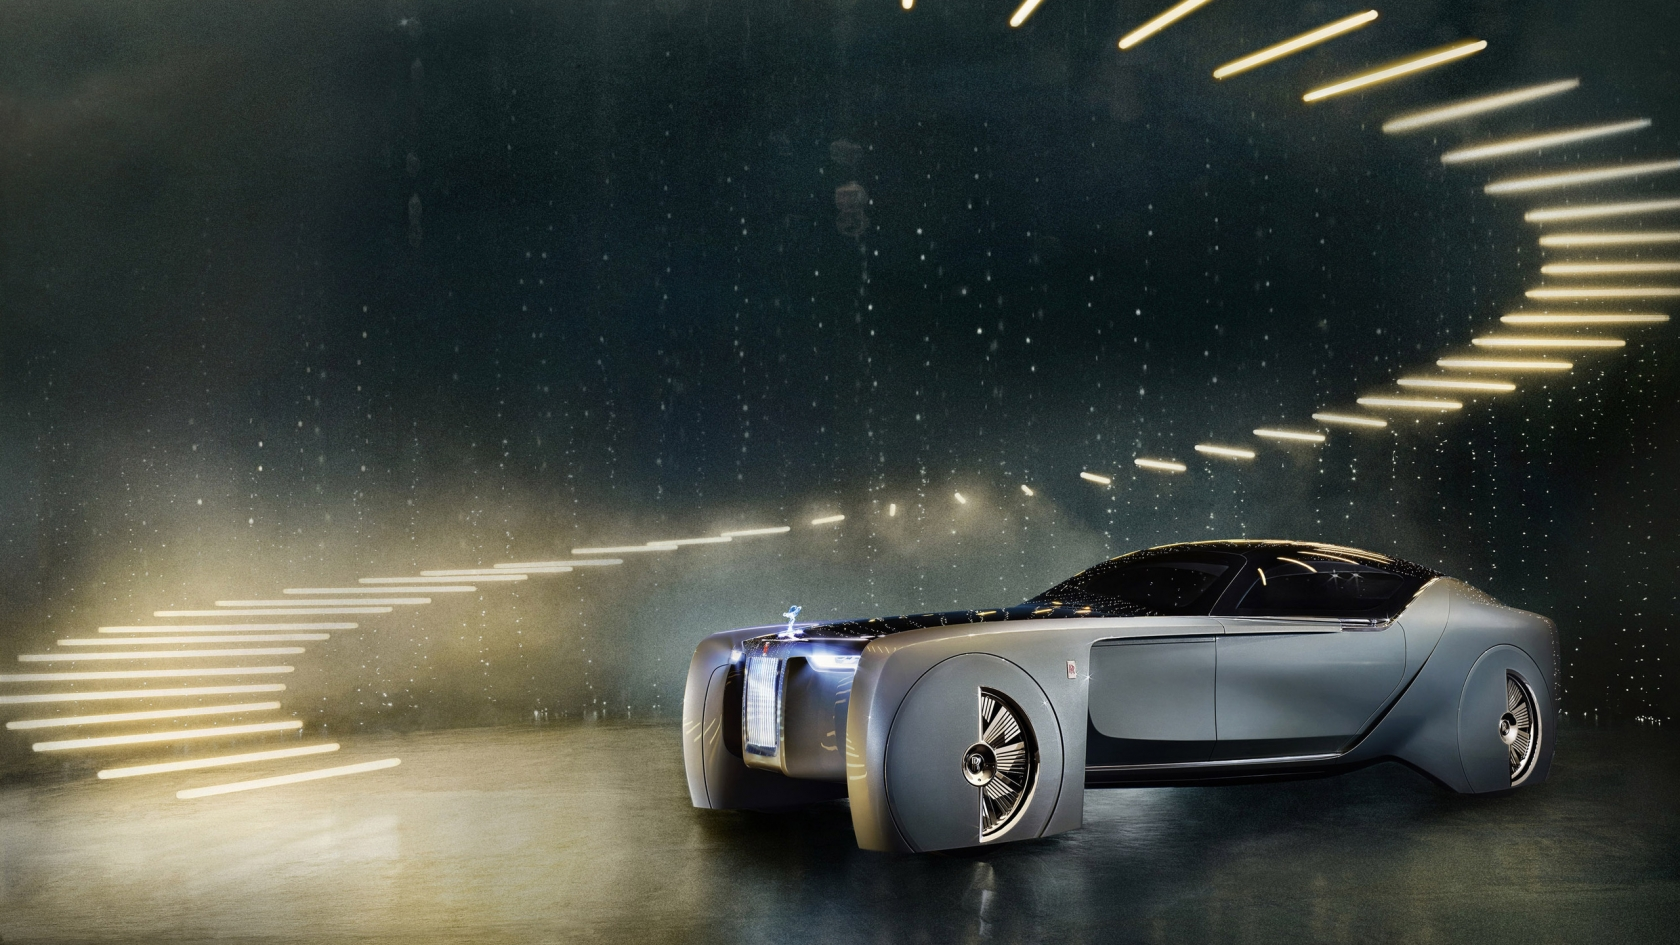 Rolls-Royce Concept Car 2016 for 1680 x 945 HDTV resolution